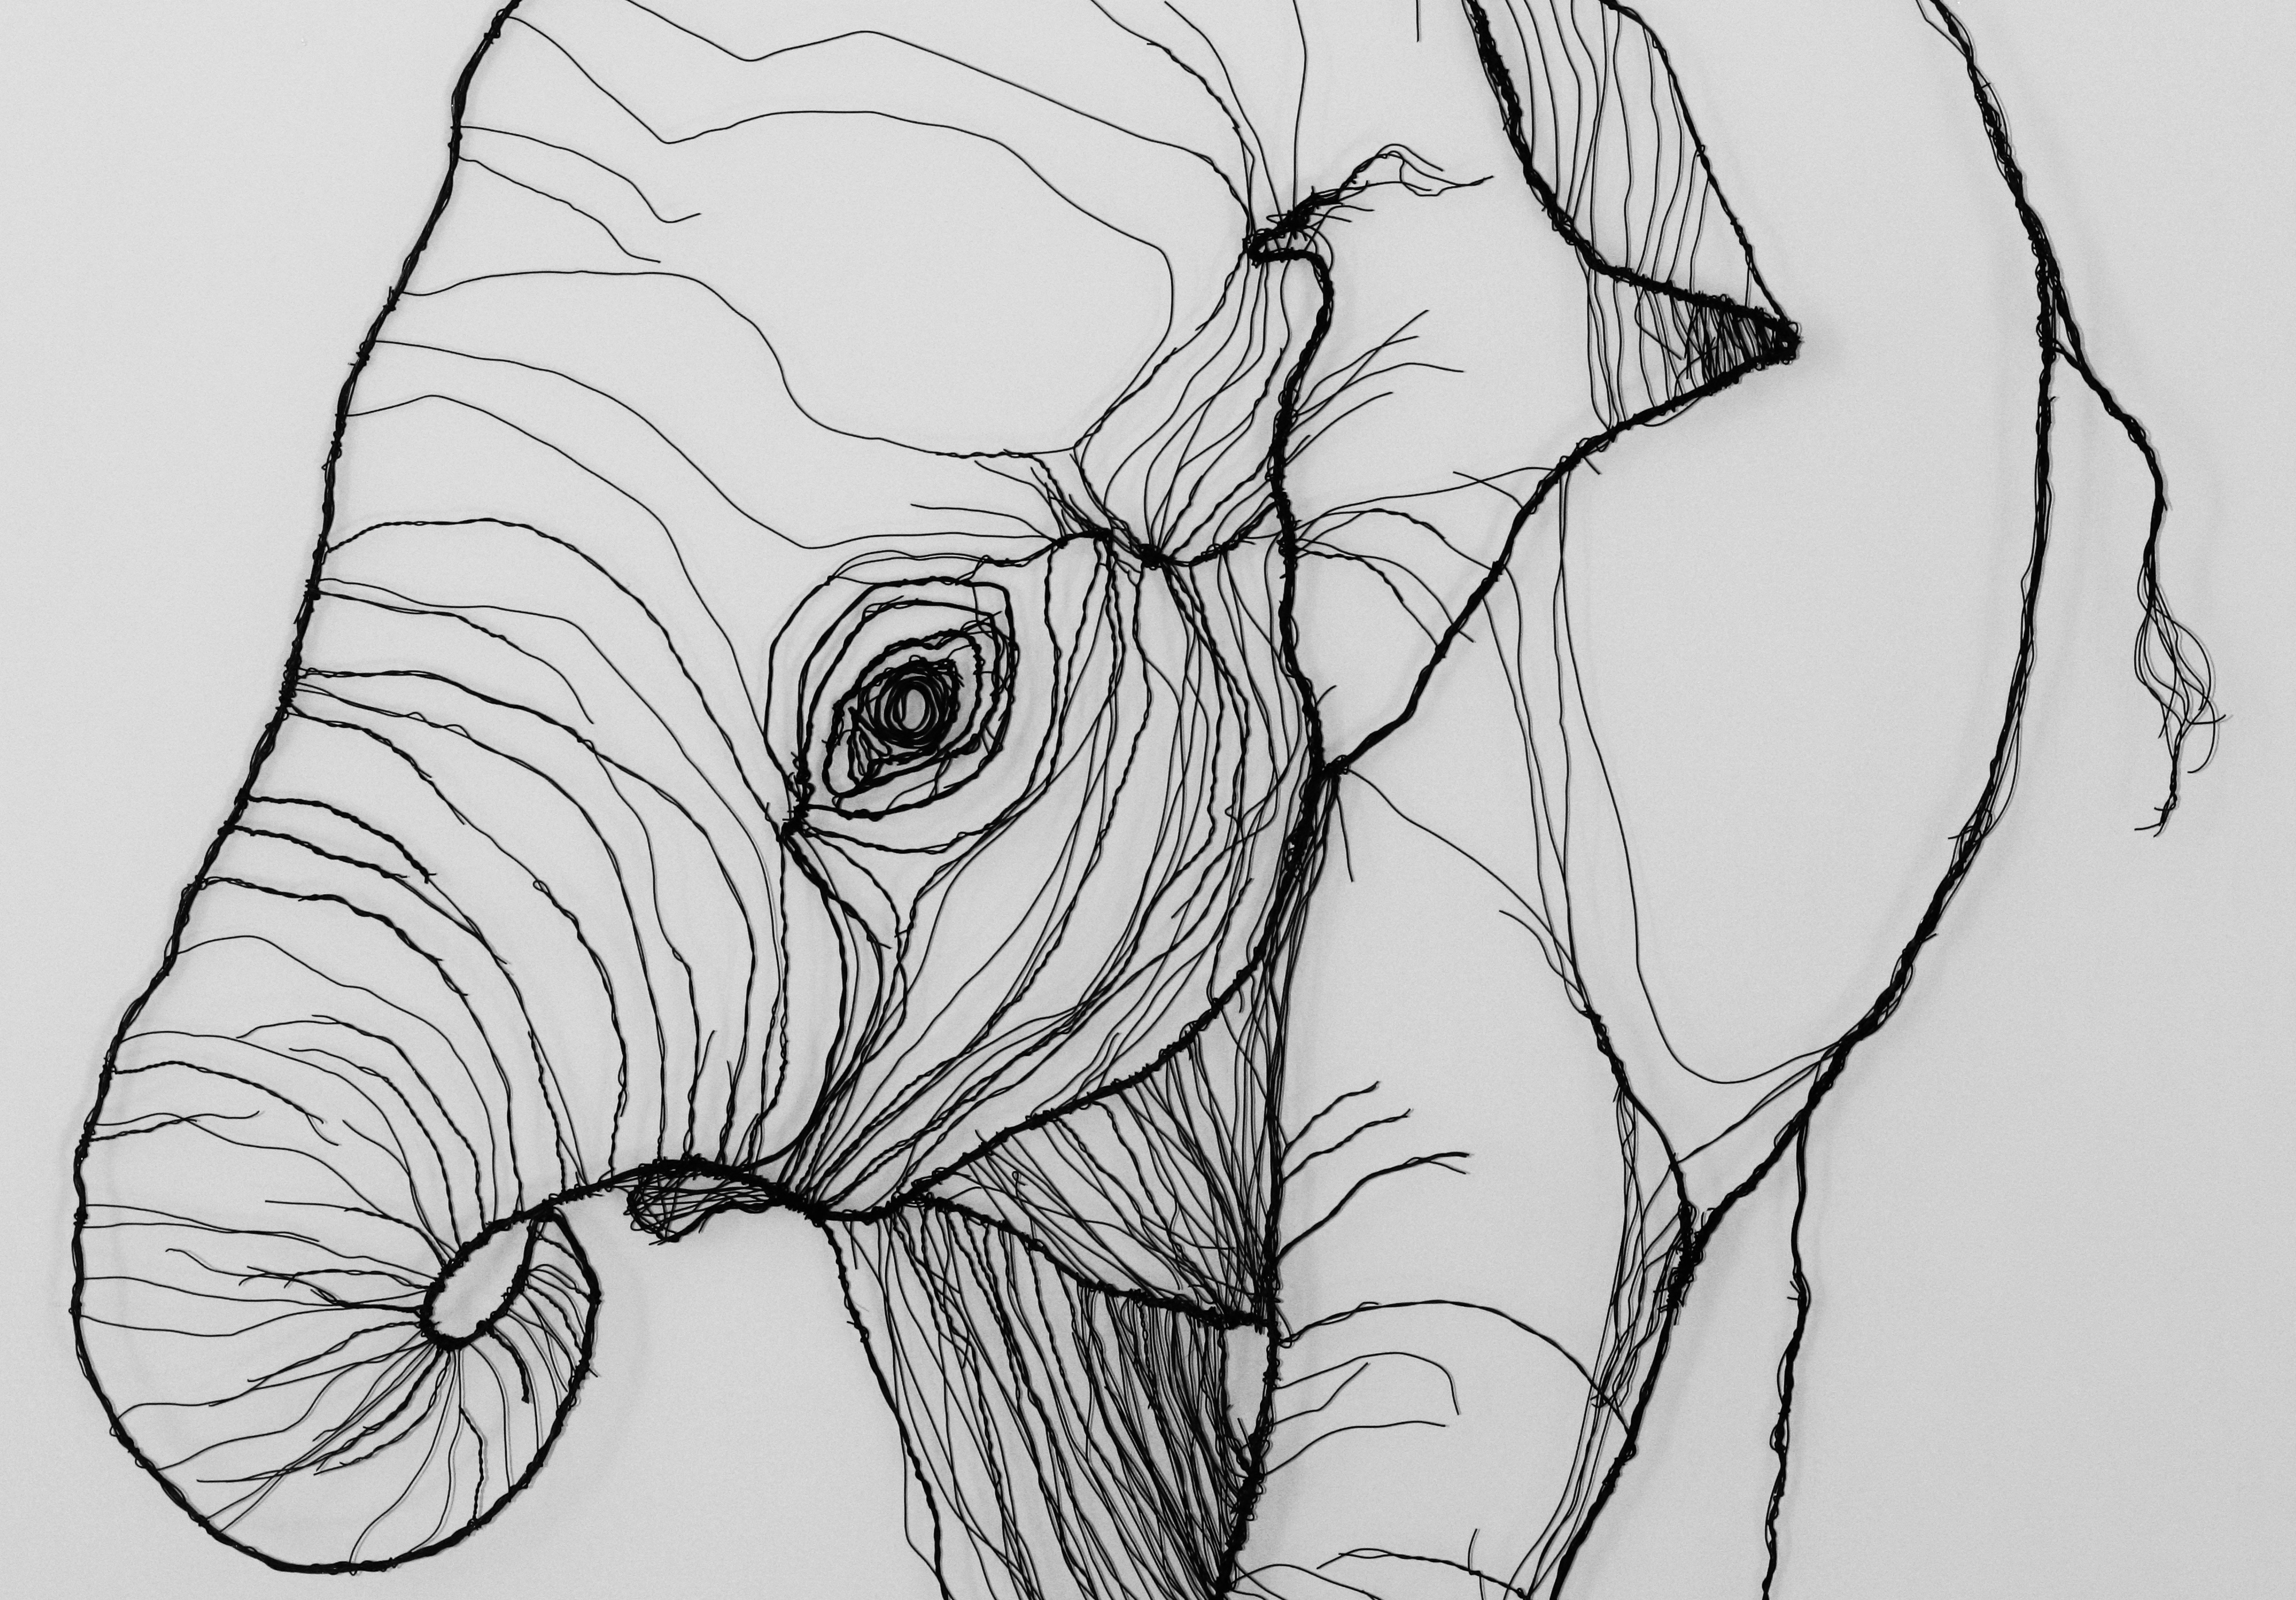 buy original elephant art at rippingham art